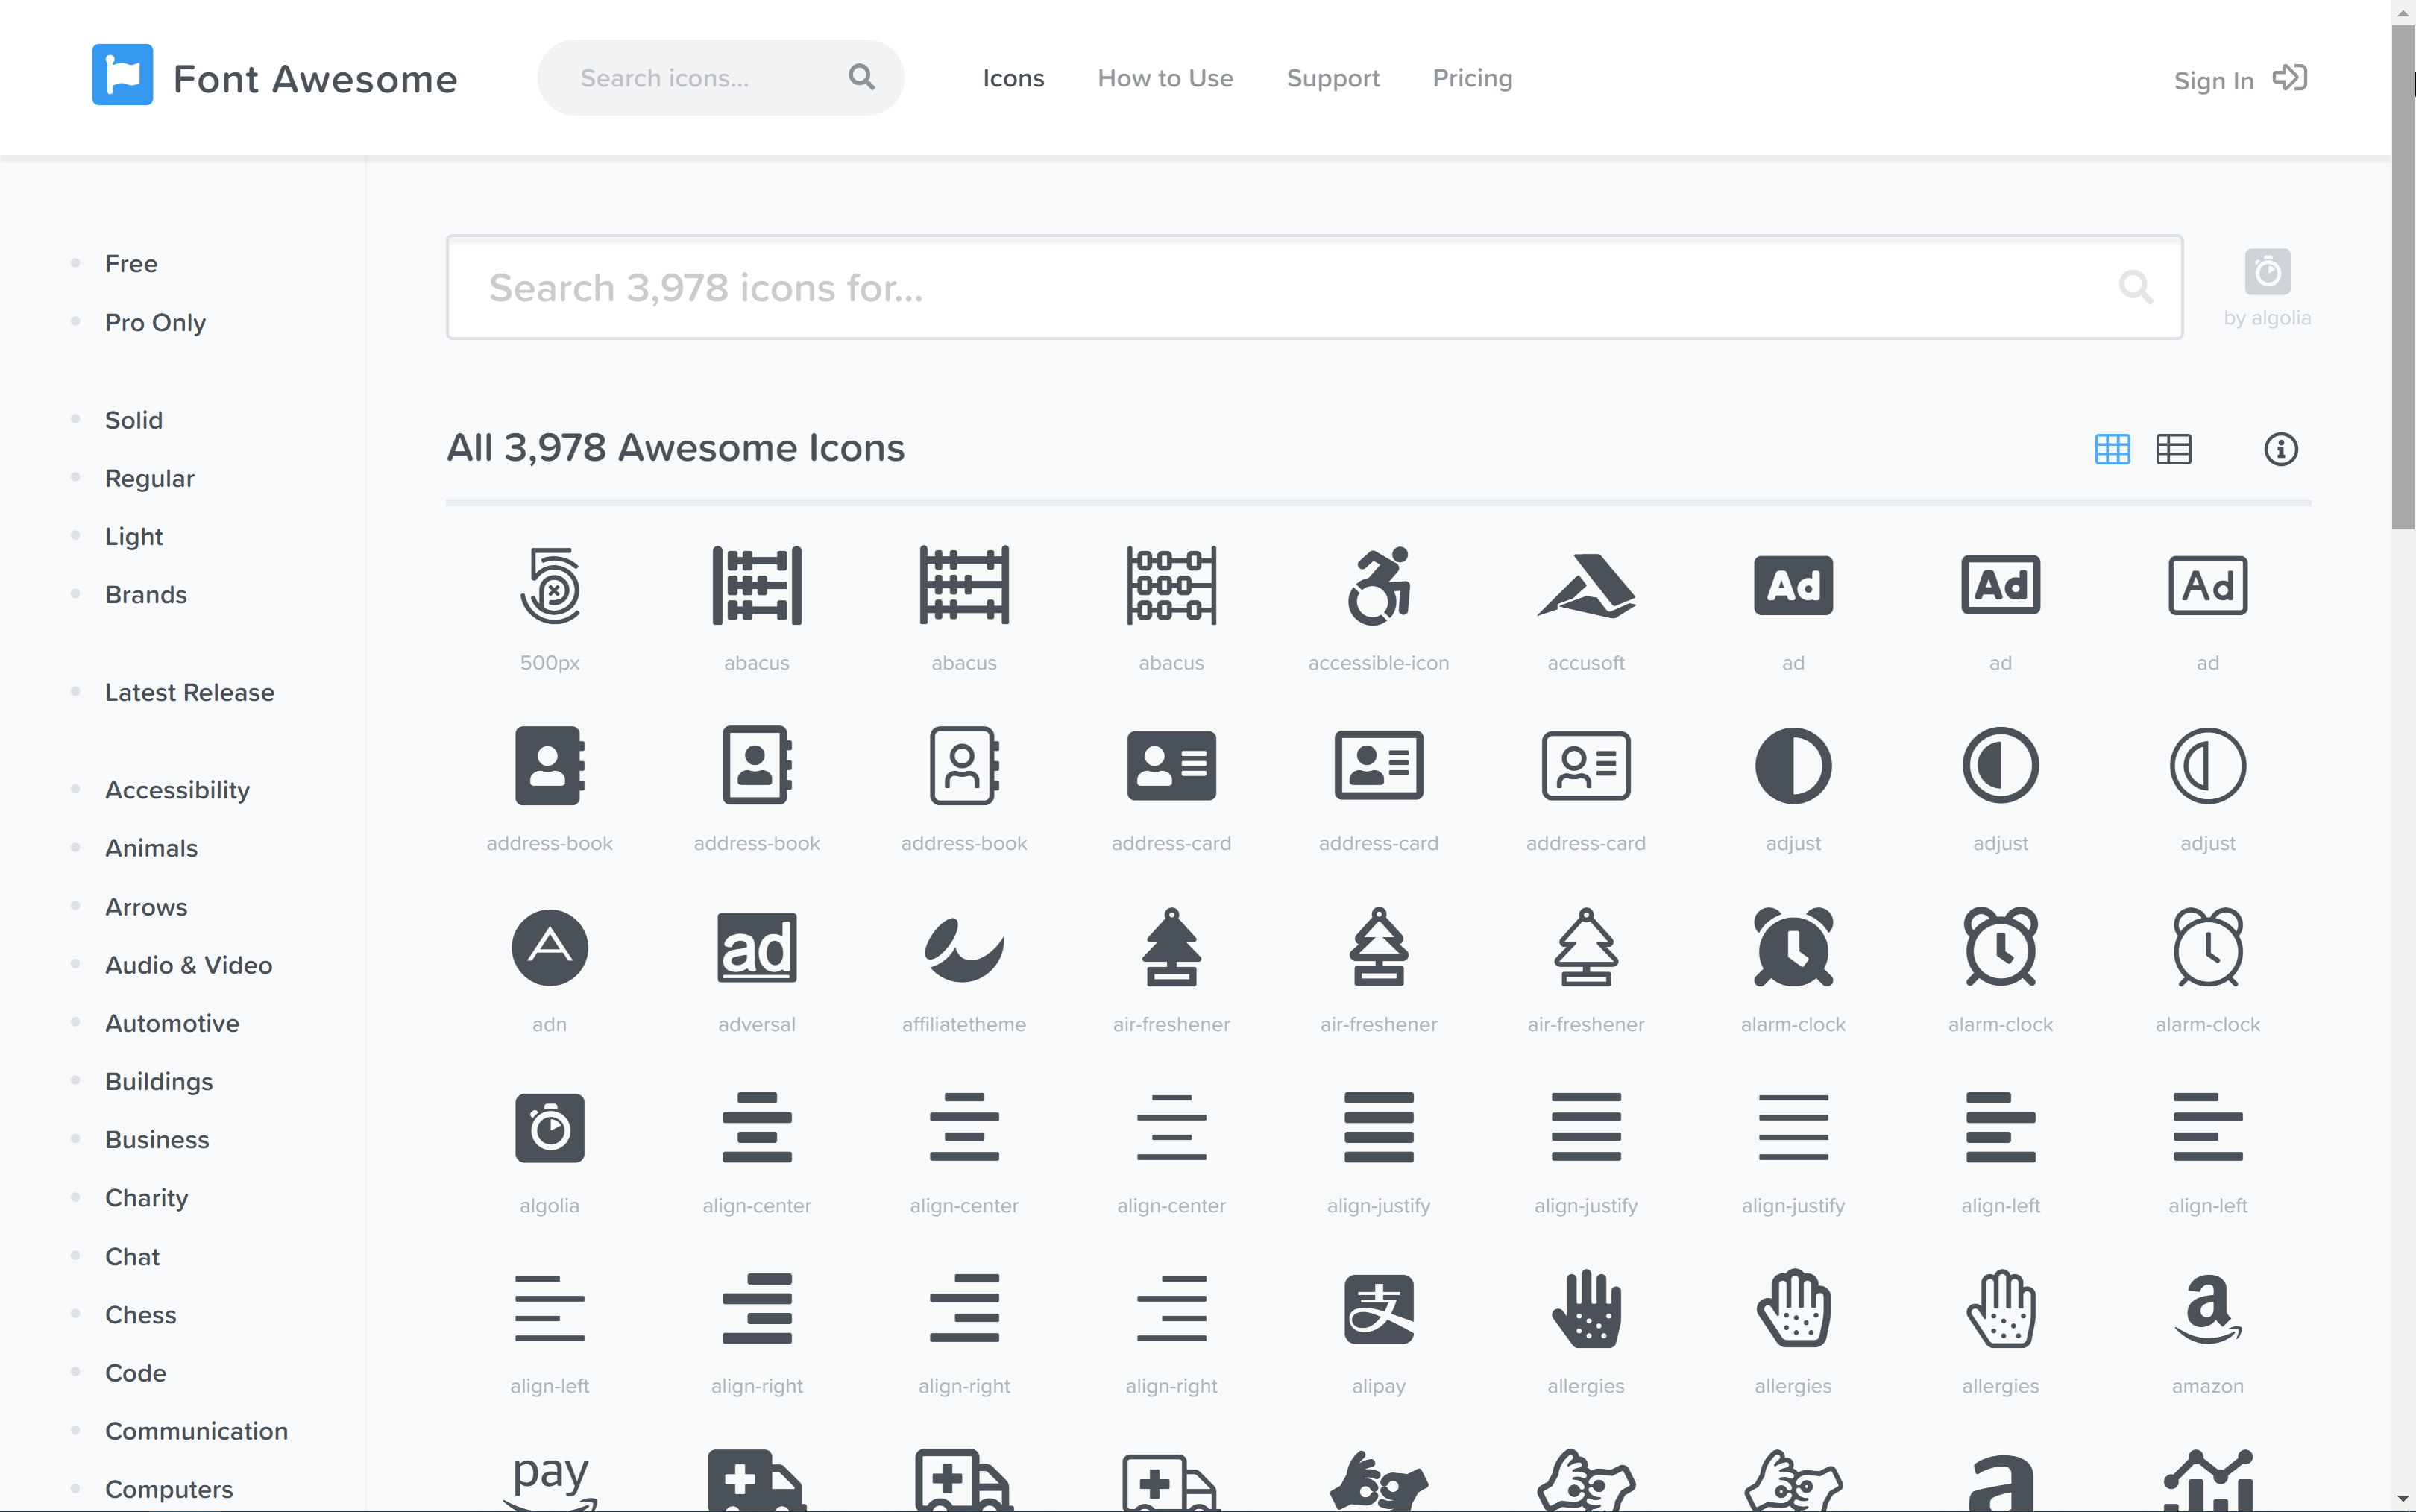 Font Awesome website with it's icons